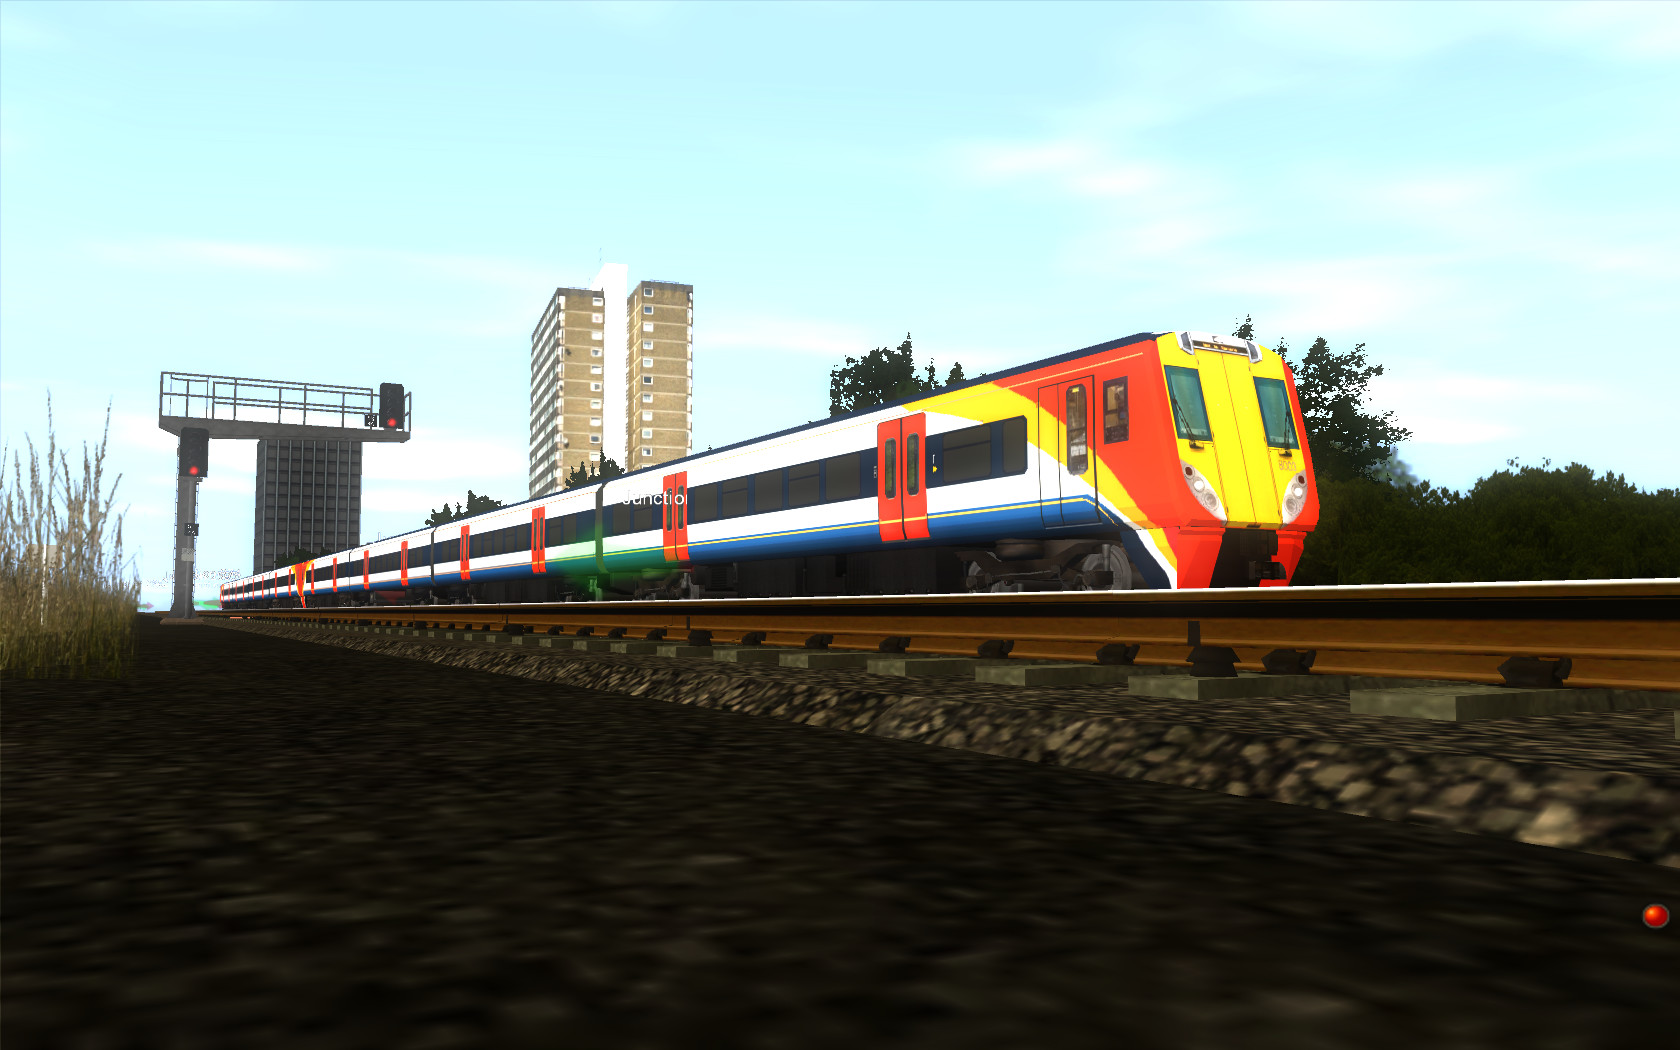 Class 458 South West Trains - Trainz by traindriver22 on